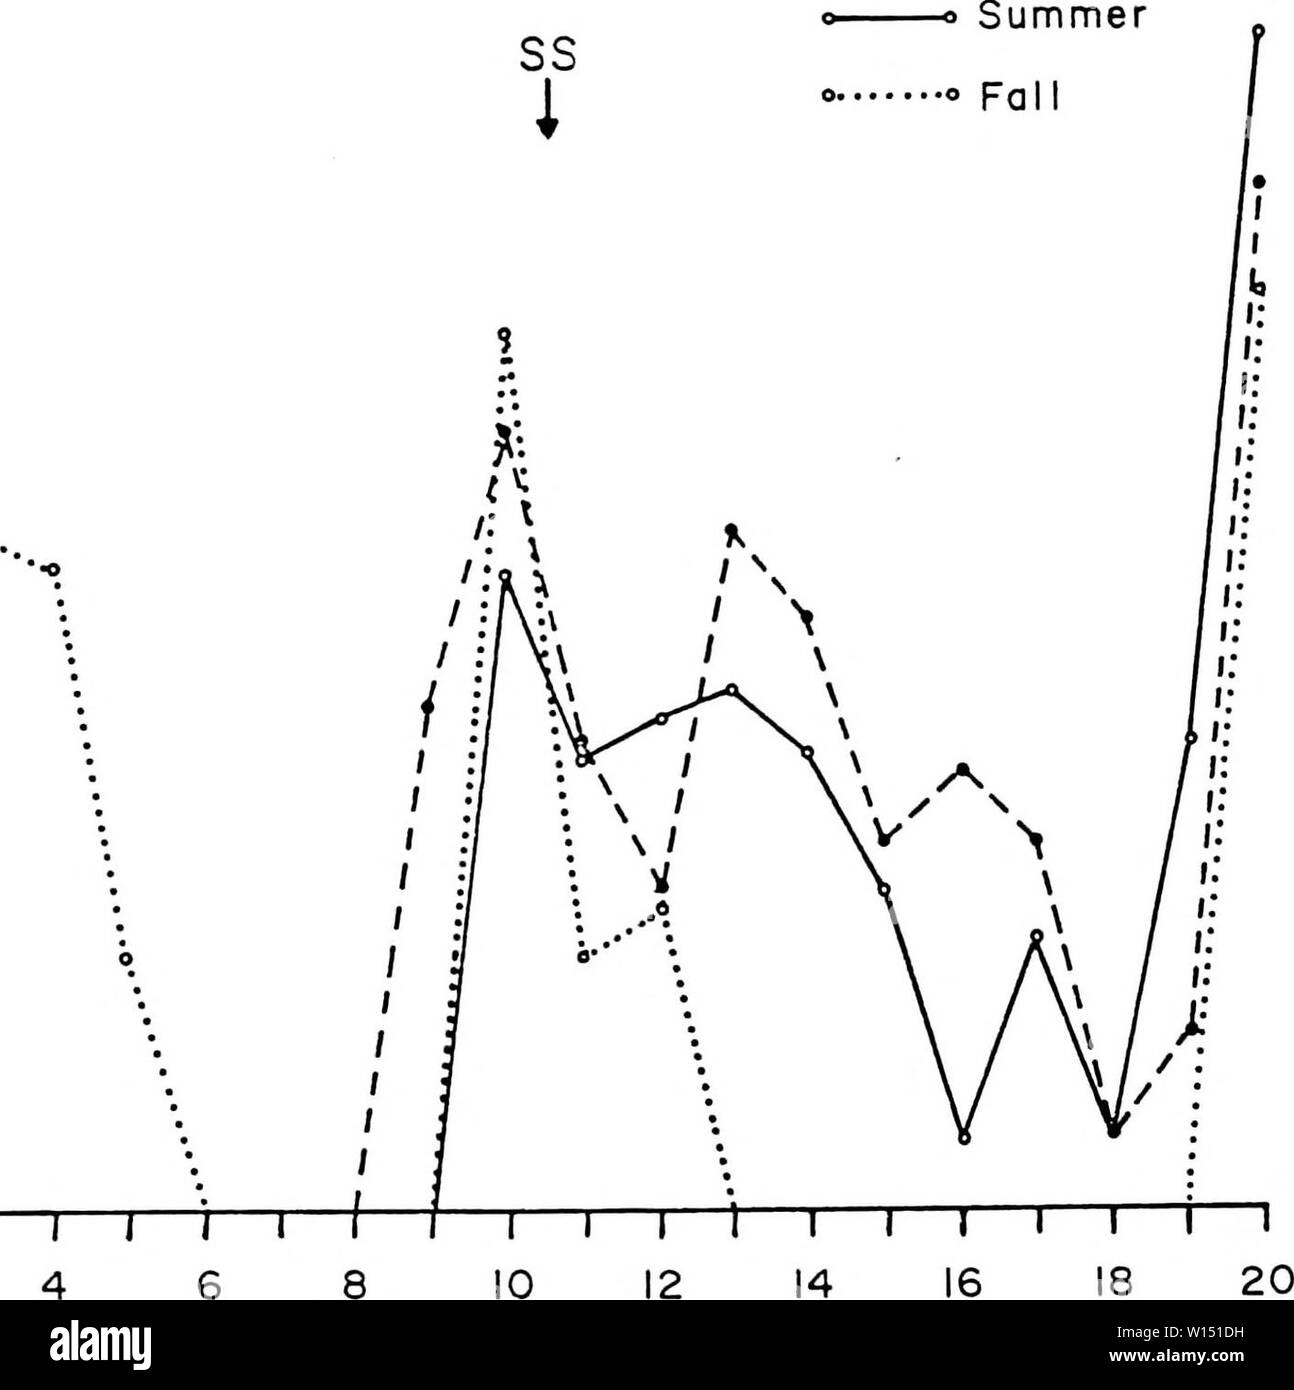 Archive image from page 103 of Diel and seasonal activities of. Diel and seasonal activities of Culicoides spp. Near Yankeetown, Florida . dielseasonalacti00lill Year: 1985  92 en LiJ < â z. oH < o o - - SR i - \ \ \ \ \ â 4 ' \ \ \ \ \ \ \\ \ 1: t â r '' 1 \ \ \ I 1 \ \ ' 1 1 ⢠⢠Spring    COLLECTION PERIOD Figure 30. Diel host-seeking activity of £. barbosai during different seasons. Stock Photo